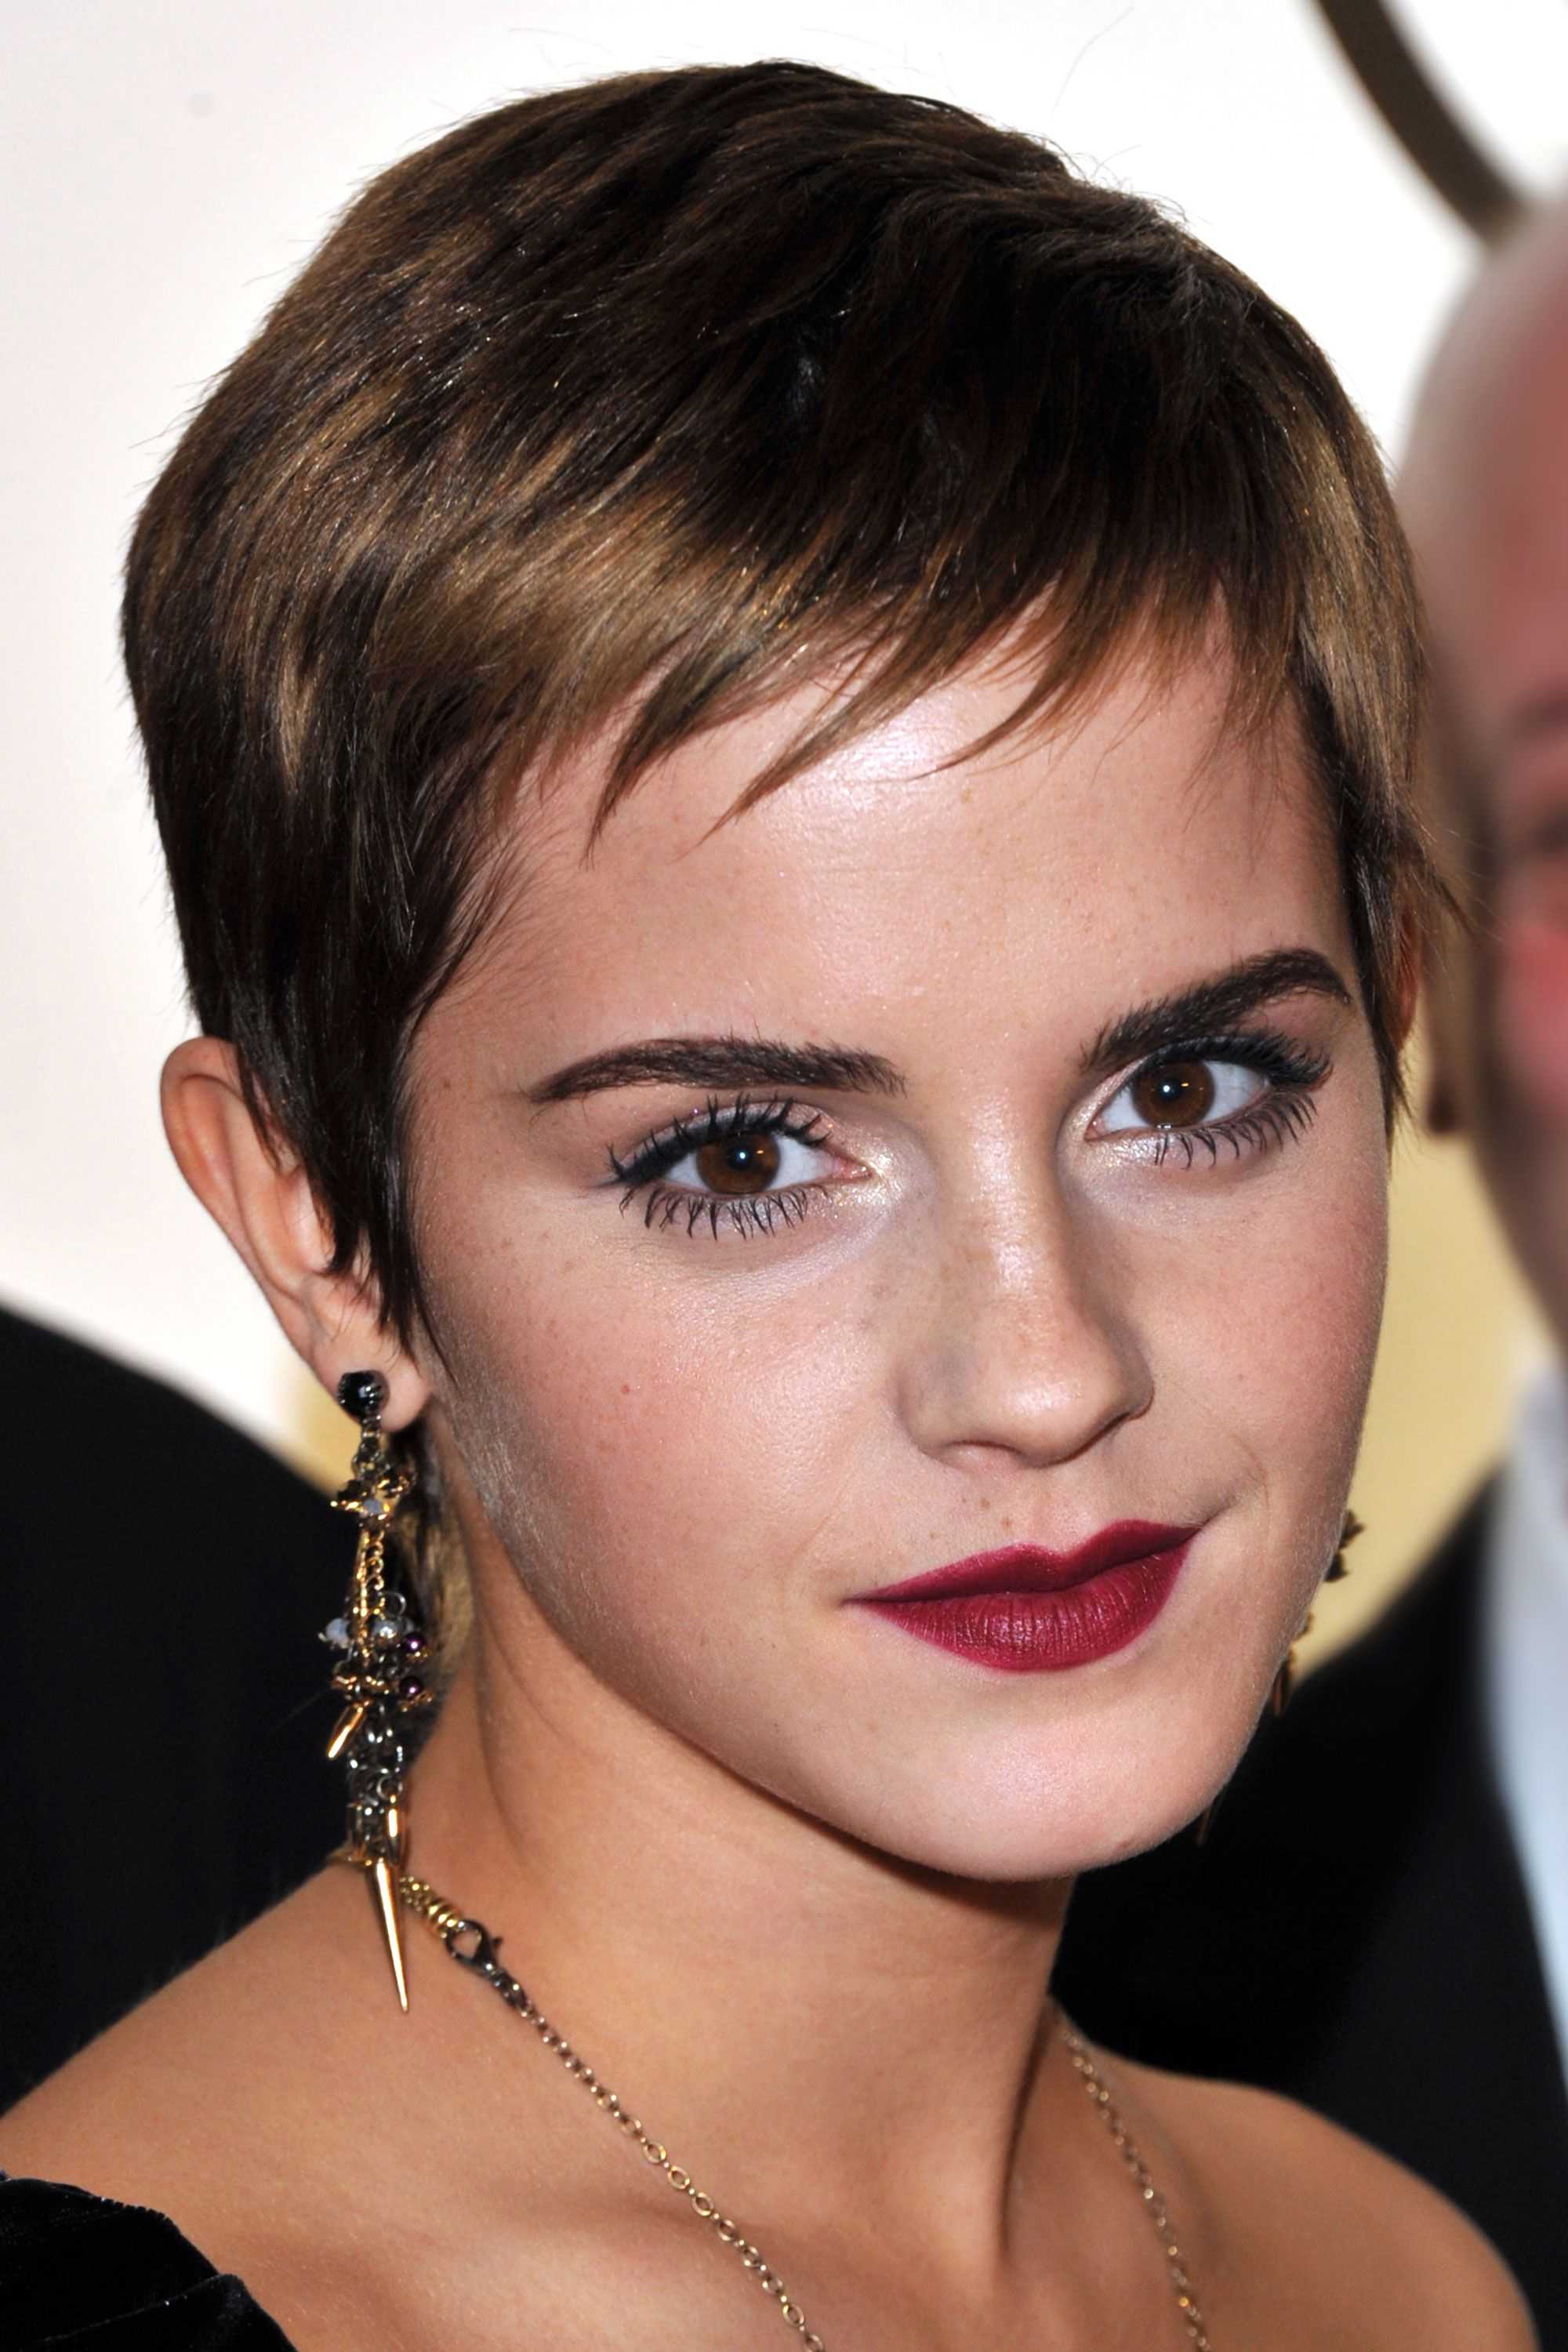 50 Pixie Cuts We Love For 2019 Short Pixie Hairstyles From